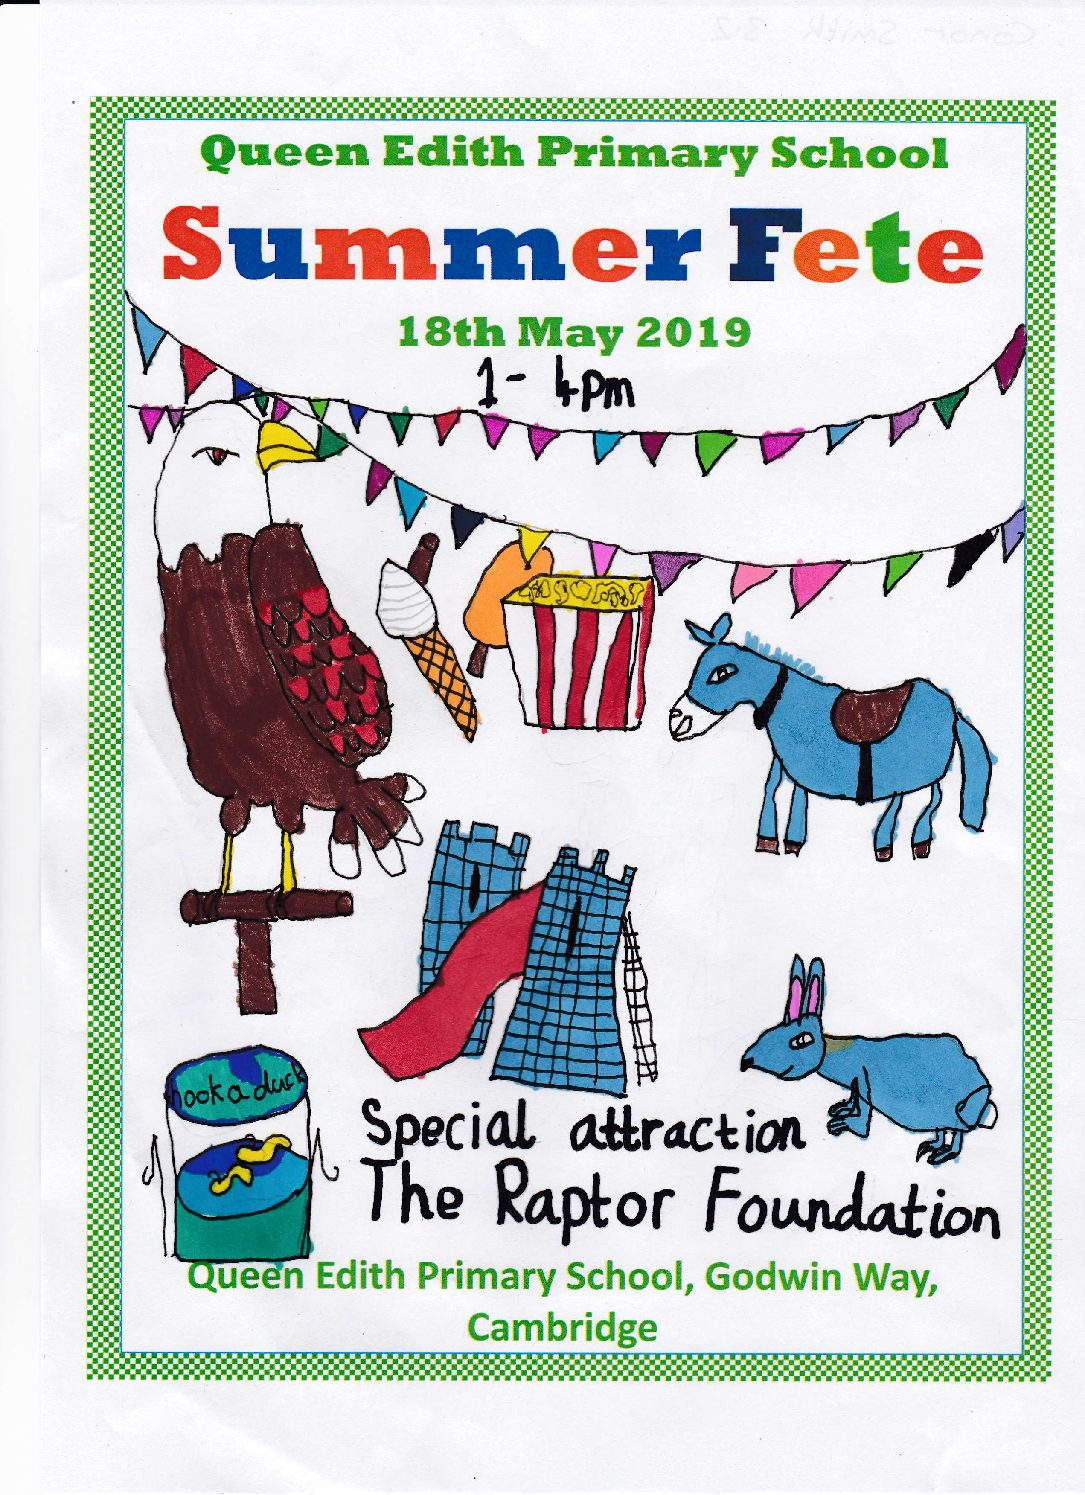 Queen Edith Summer Fete 2019 Poster_2019_01-pdf.jpg